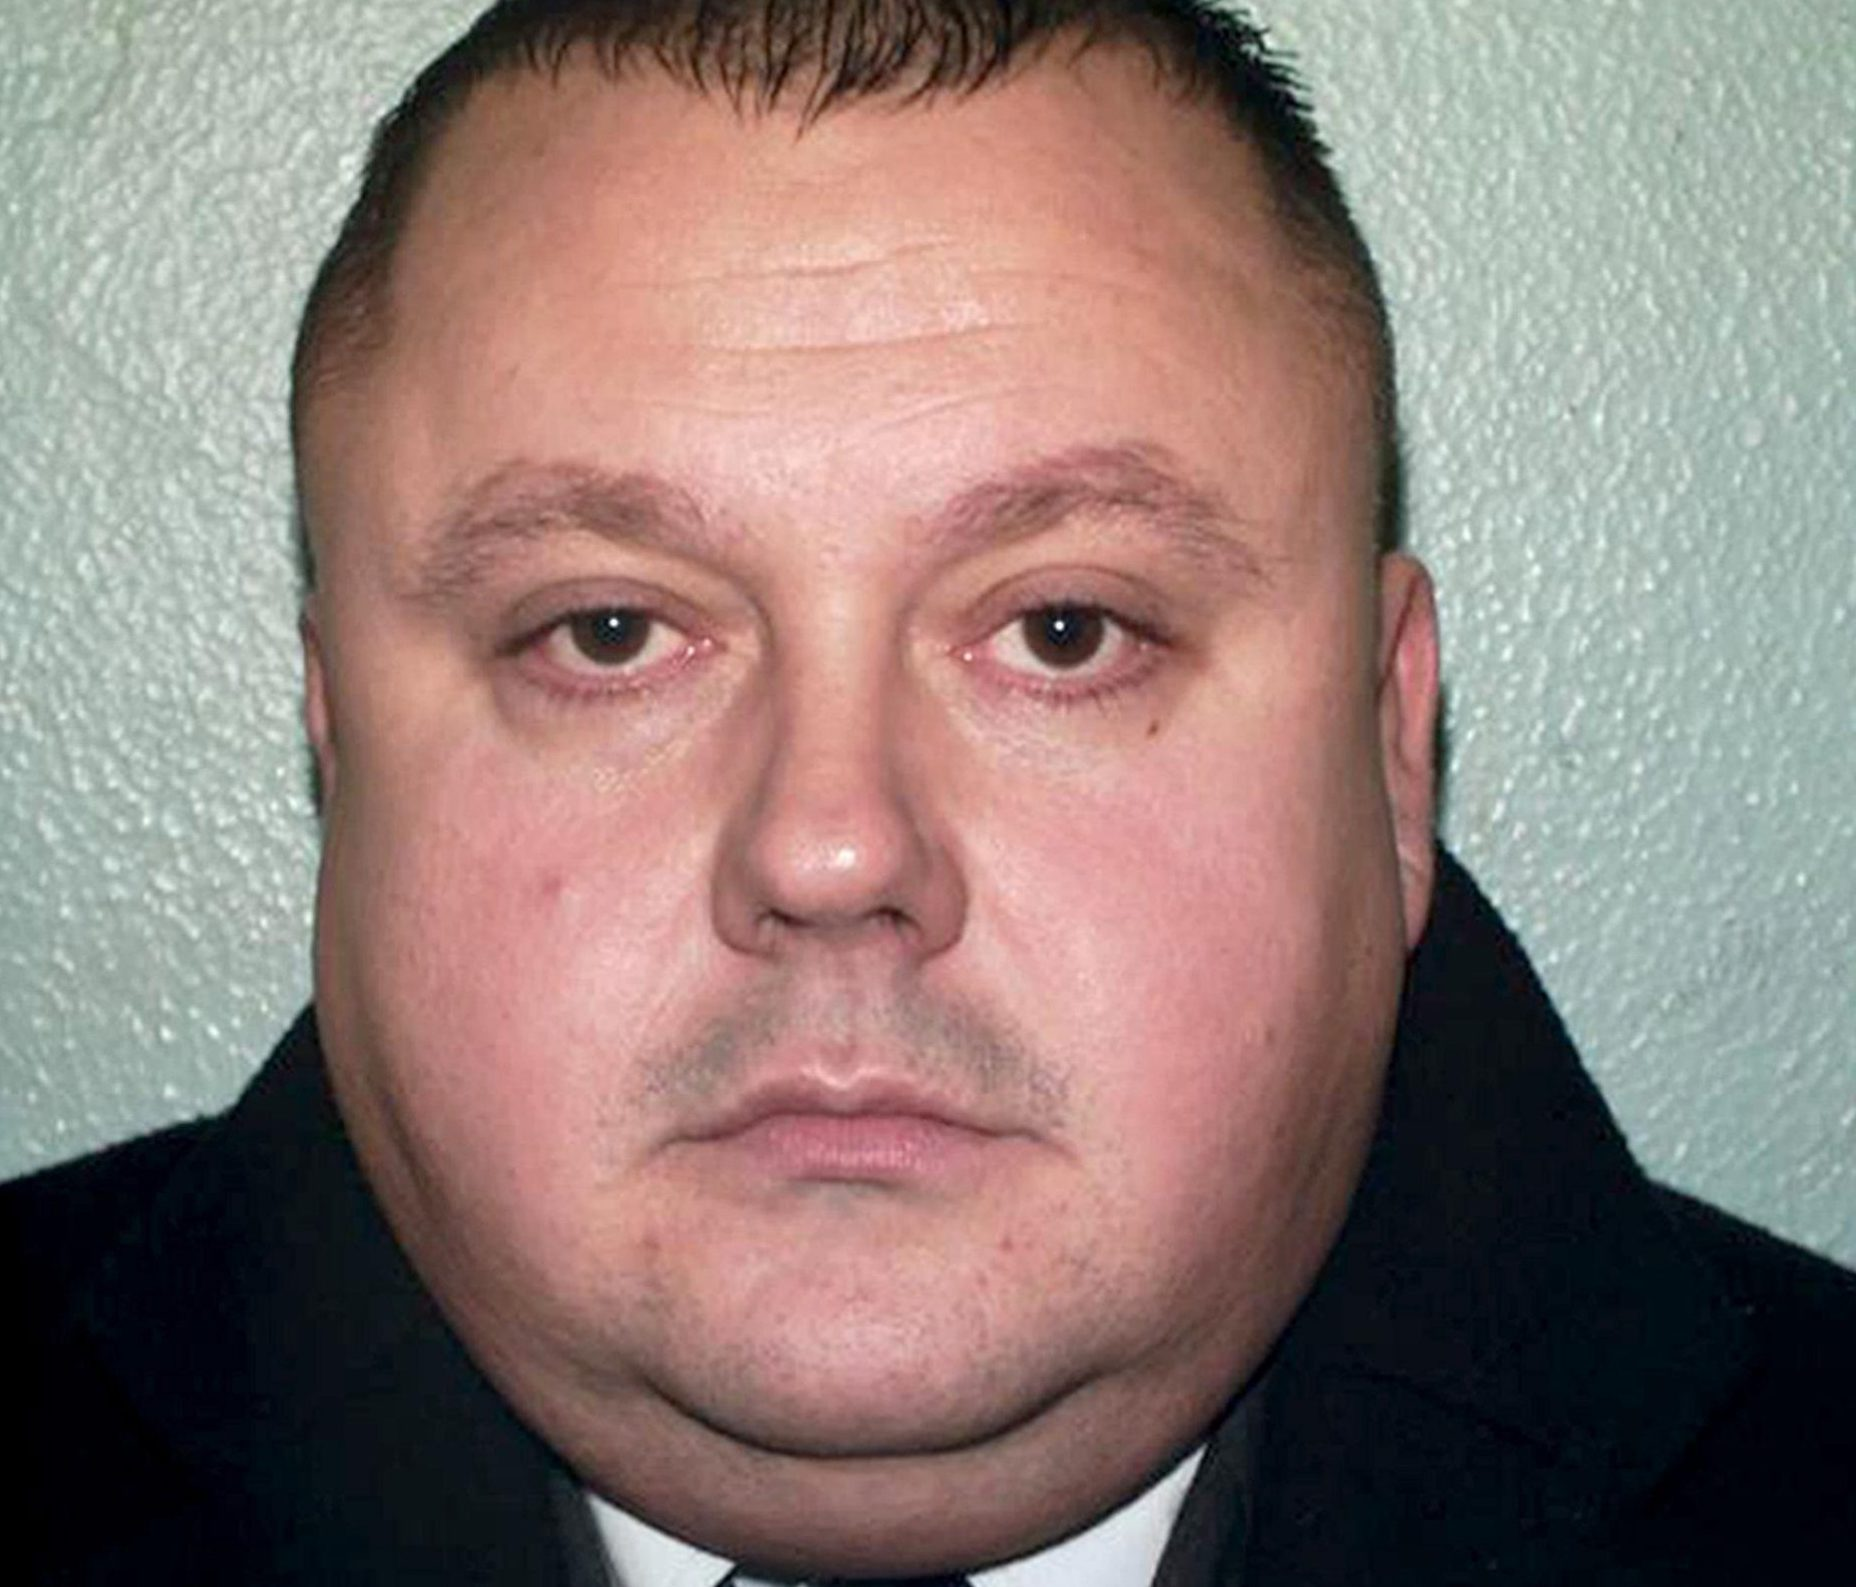 Undated Metropolitan Police handout photo of 39-year-old Levi Bellfield who was found guilty at the Old Bailey yesterday of the murder of two young women. Bus stop killer Levi Bellfield, the prime suspect in the Milly Dowler murder, is facing three life sentences today.